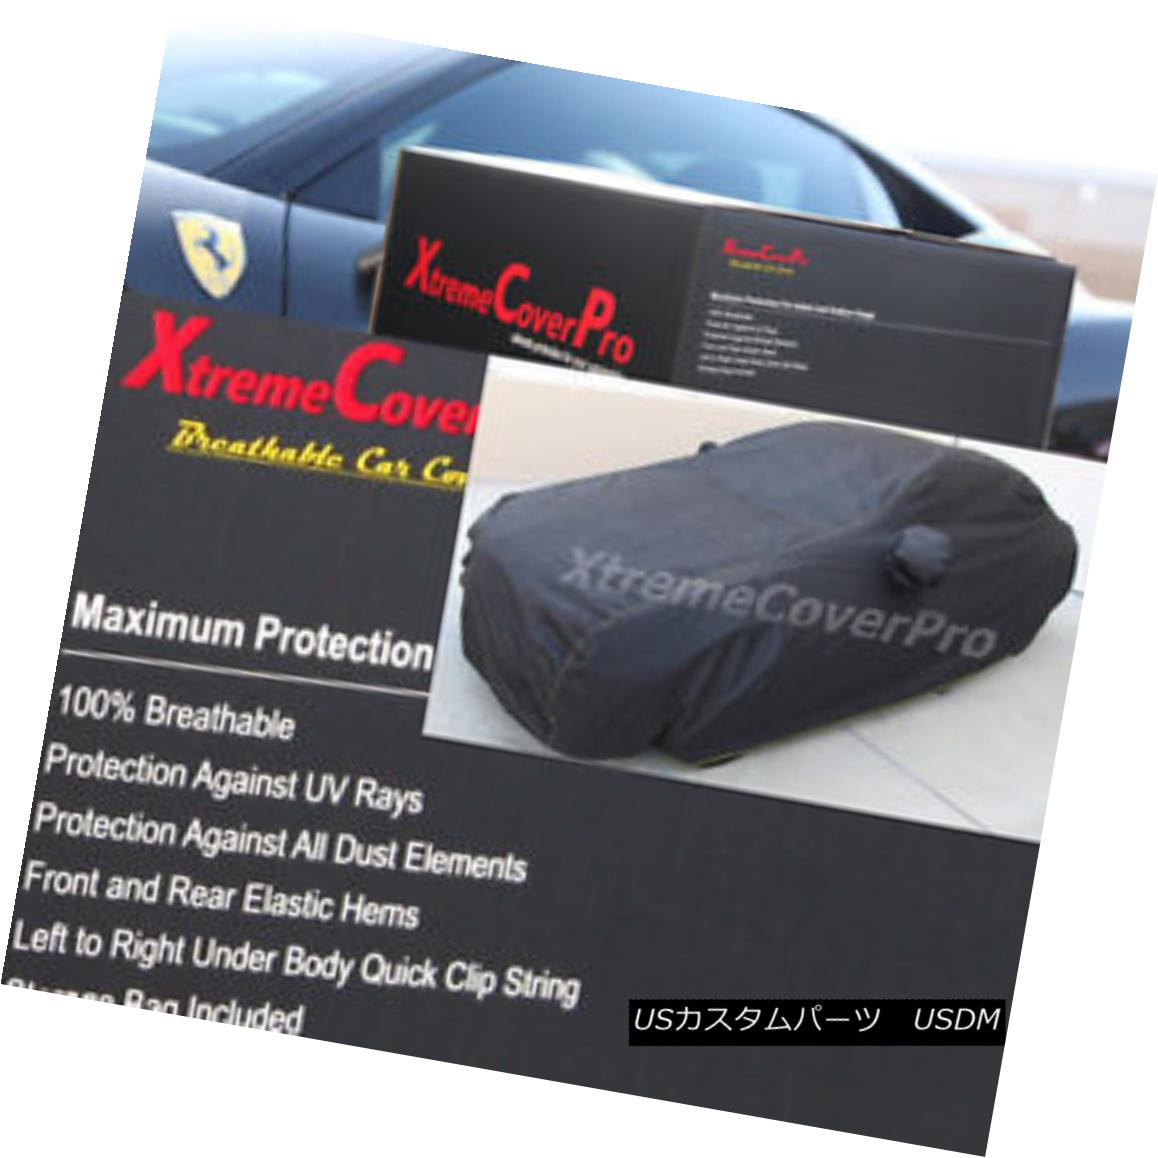 カーカバー 2016 2017 PORSCHE 911 Targa 4 4S BREATHABLE CAR COVER W/MIRROR POCKET -BLACK 2016 2017 PORSCHE 911 Targa 4 4S走行車カバー付き/ミラーポケット-BLACK